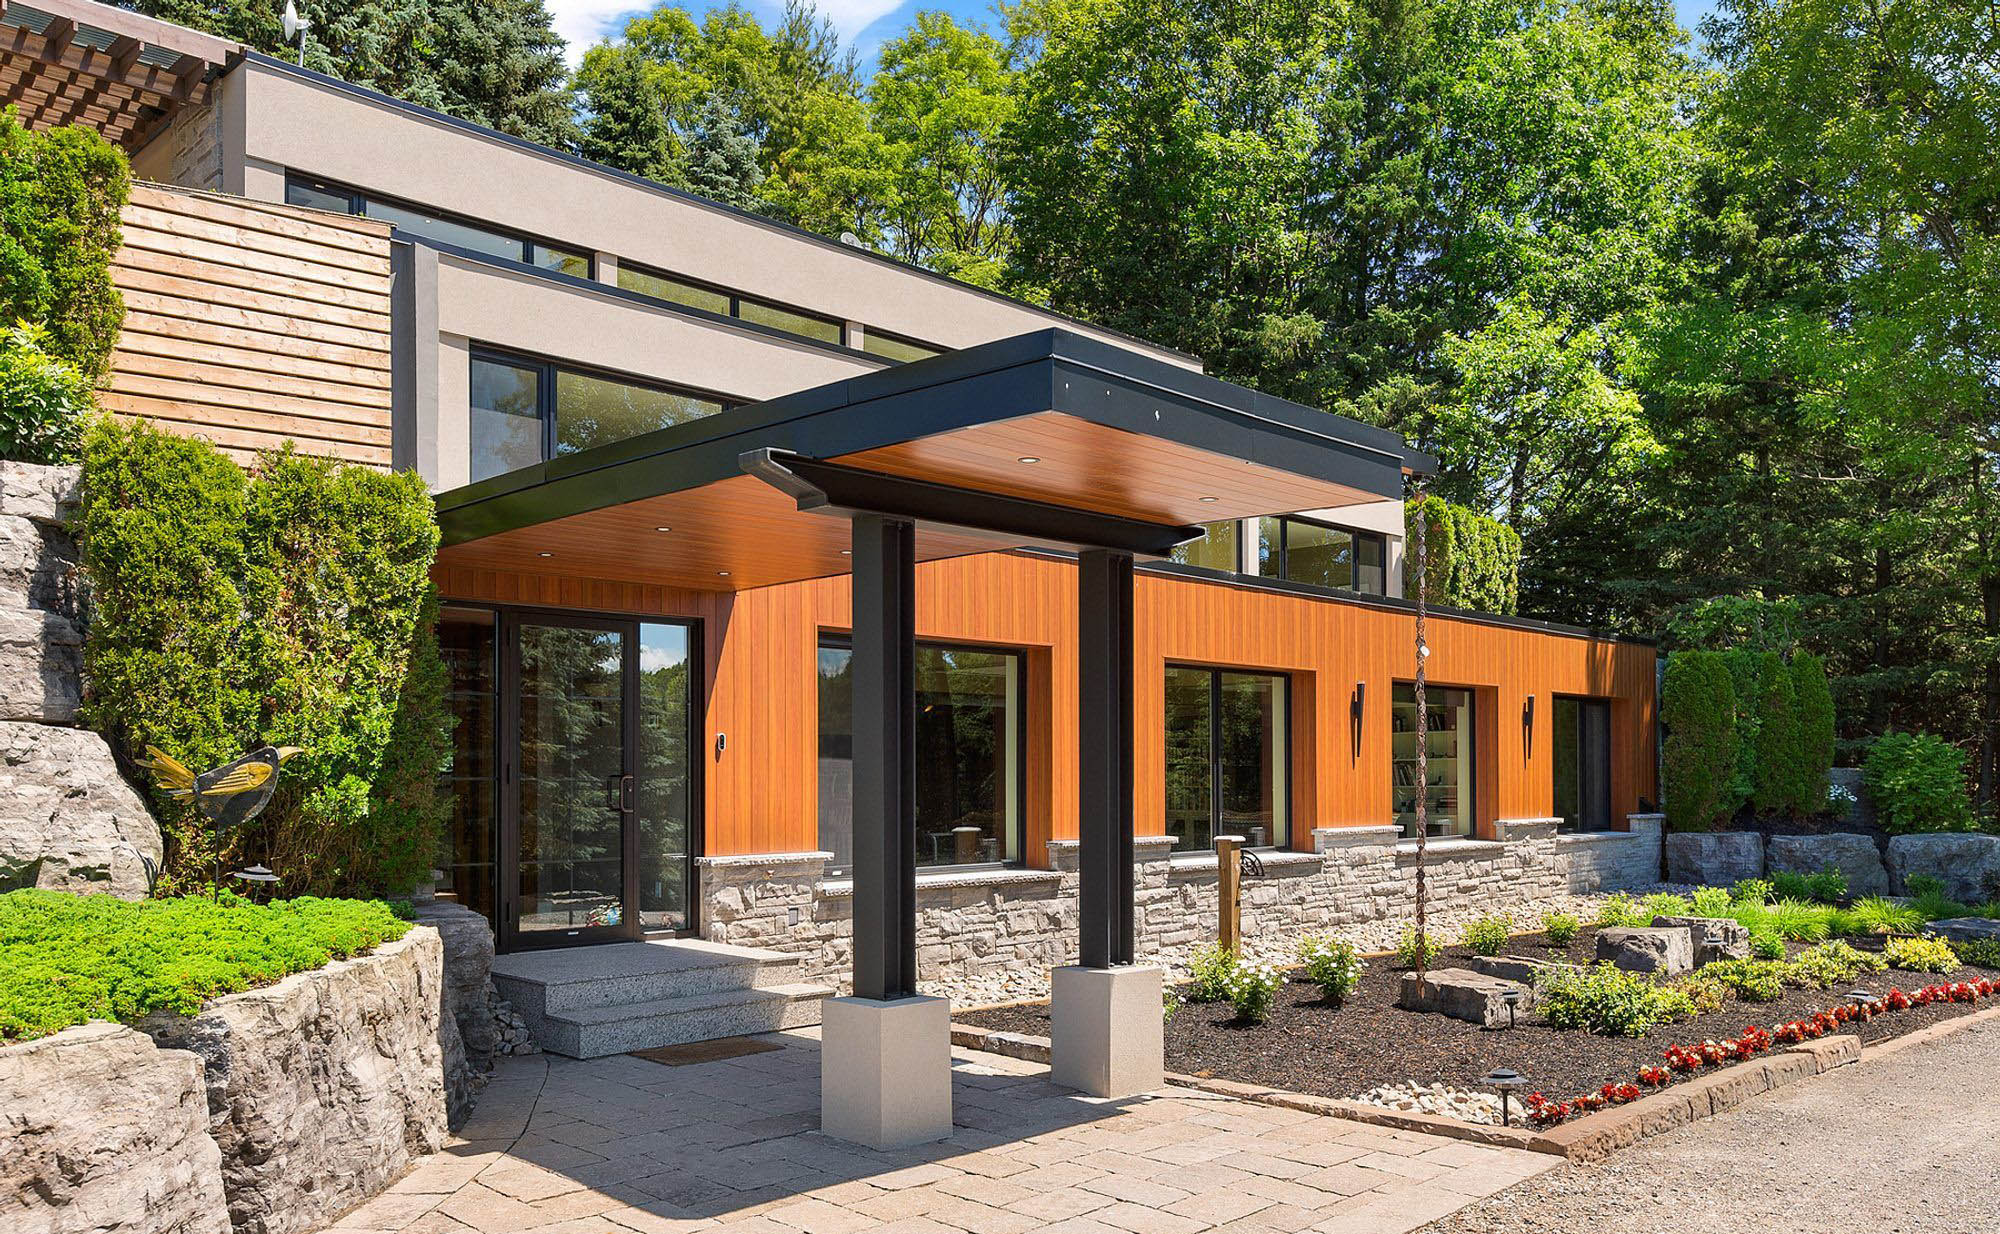 Modern home with black metal fascia and wood soffit including recessed lighting.